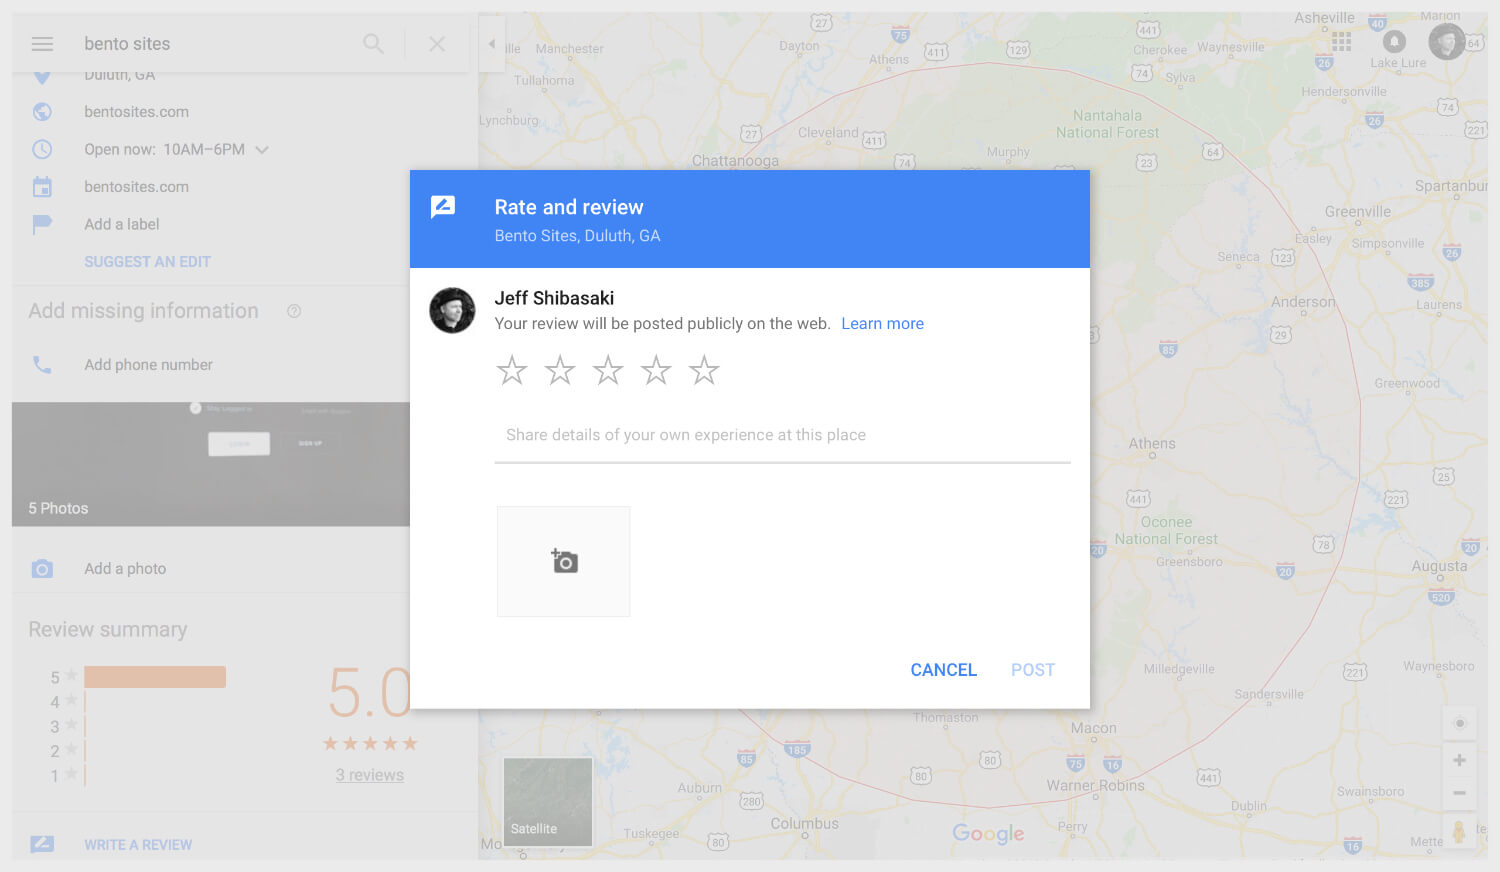 Rating and reviewing a business on Google Maps